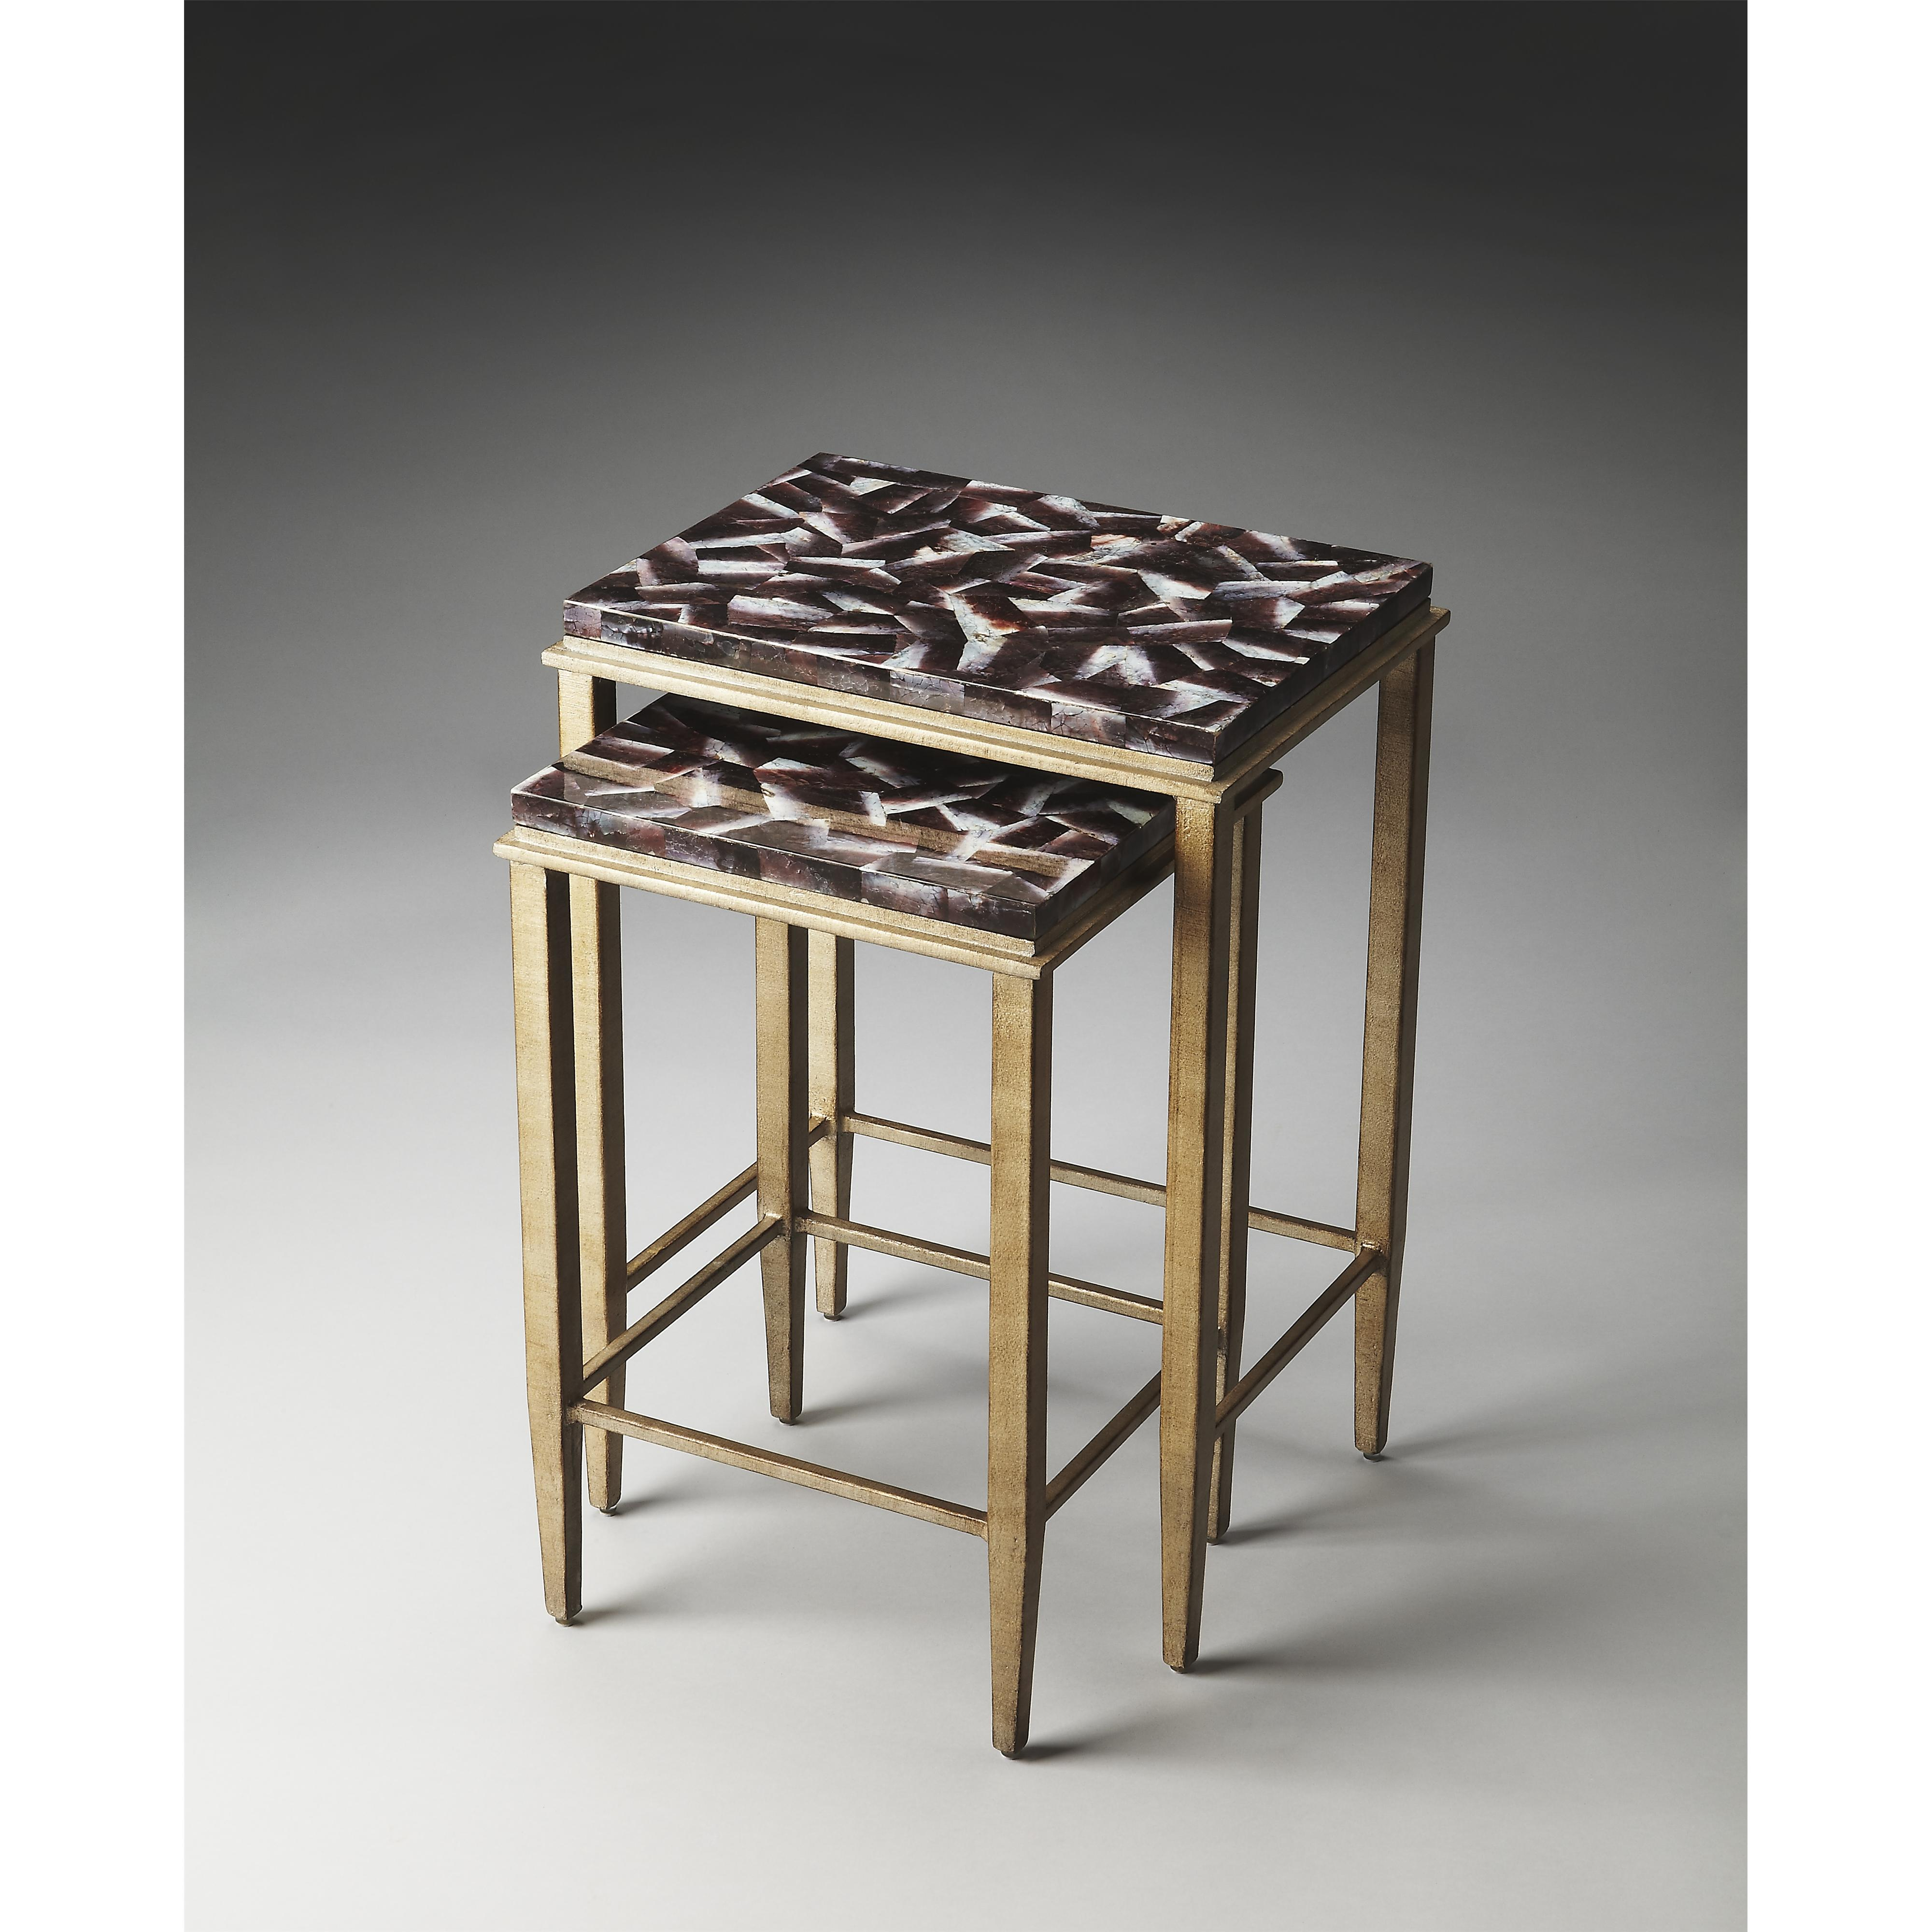 Butler Specialty Company Metalworks Nesting Tables - Item Number: 2522025